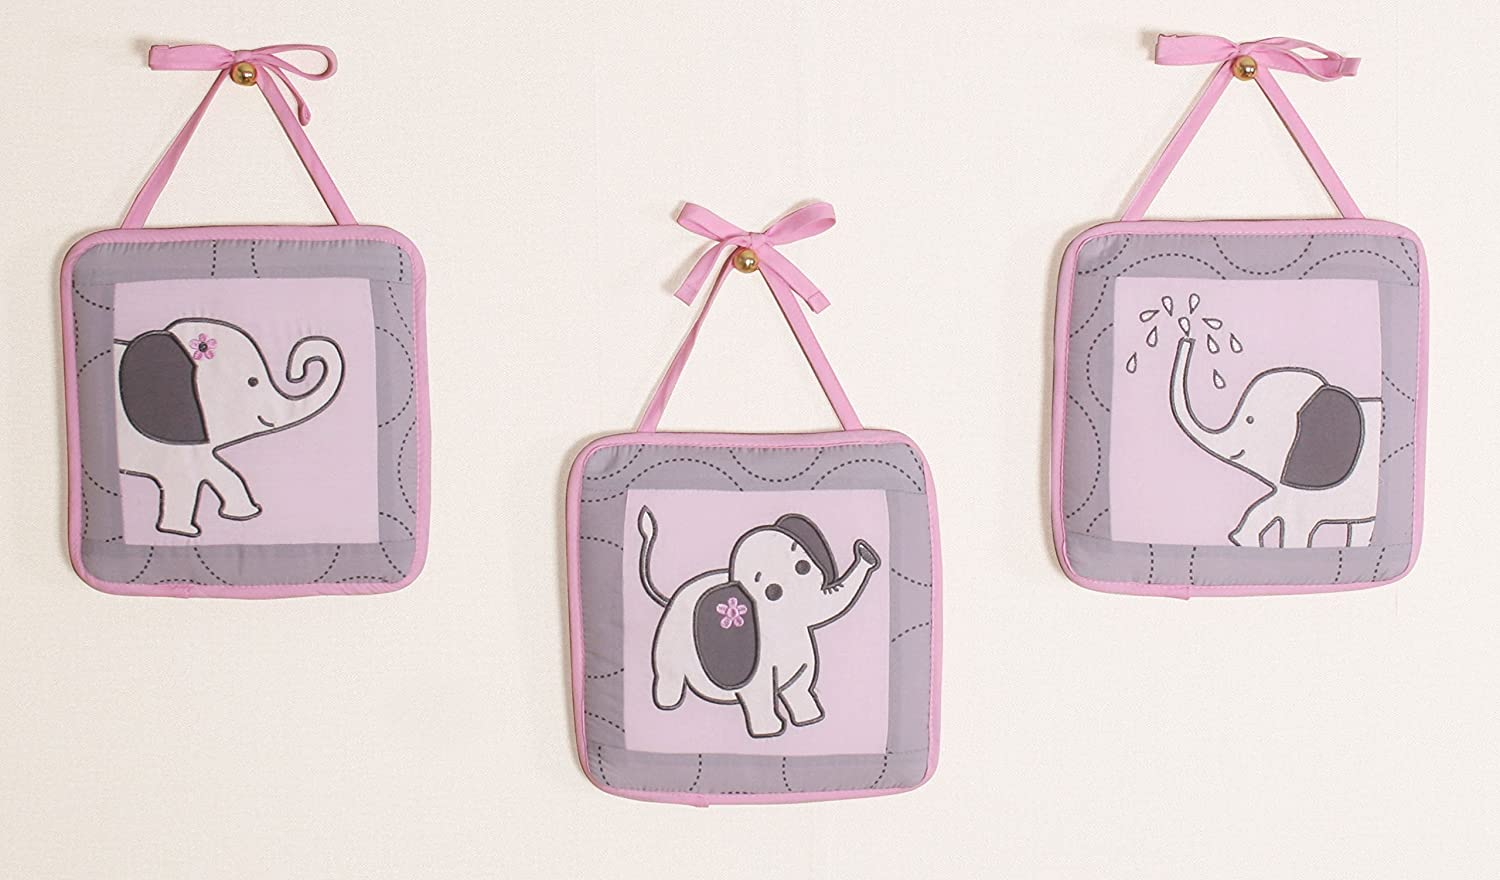 6b80a1dcd413d4 Amazon.com : Boutique Baby Pink Gray Elephant 14 Pieces Nursery Crib  Bedding Sets - Including Musical Mobile : Baby